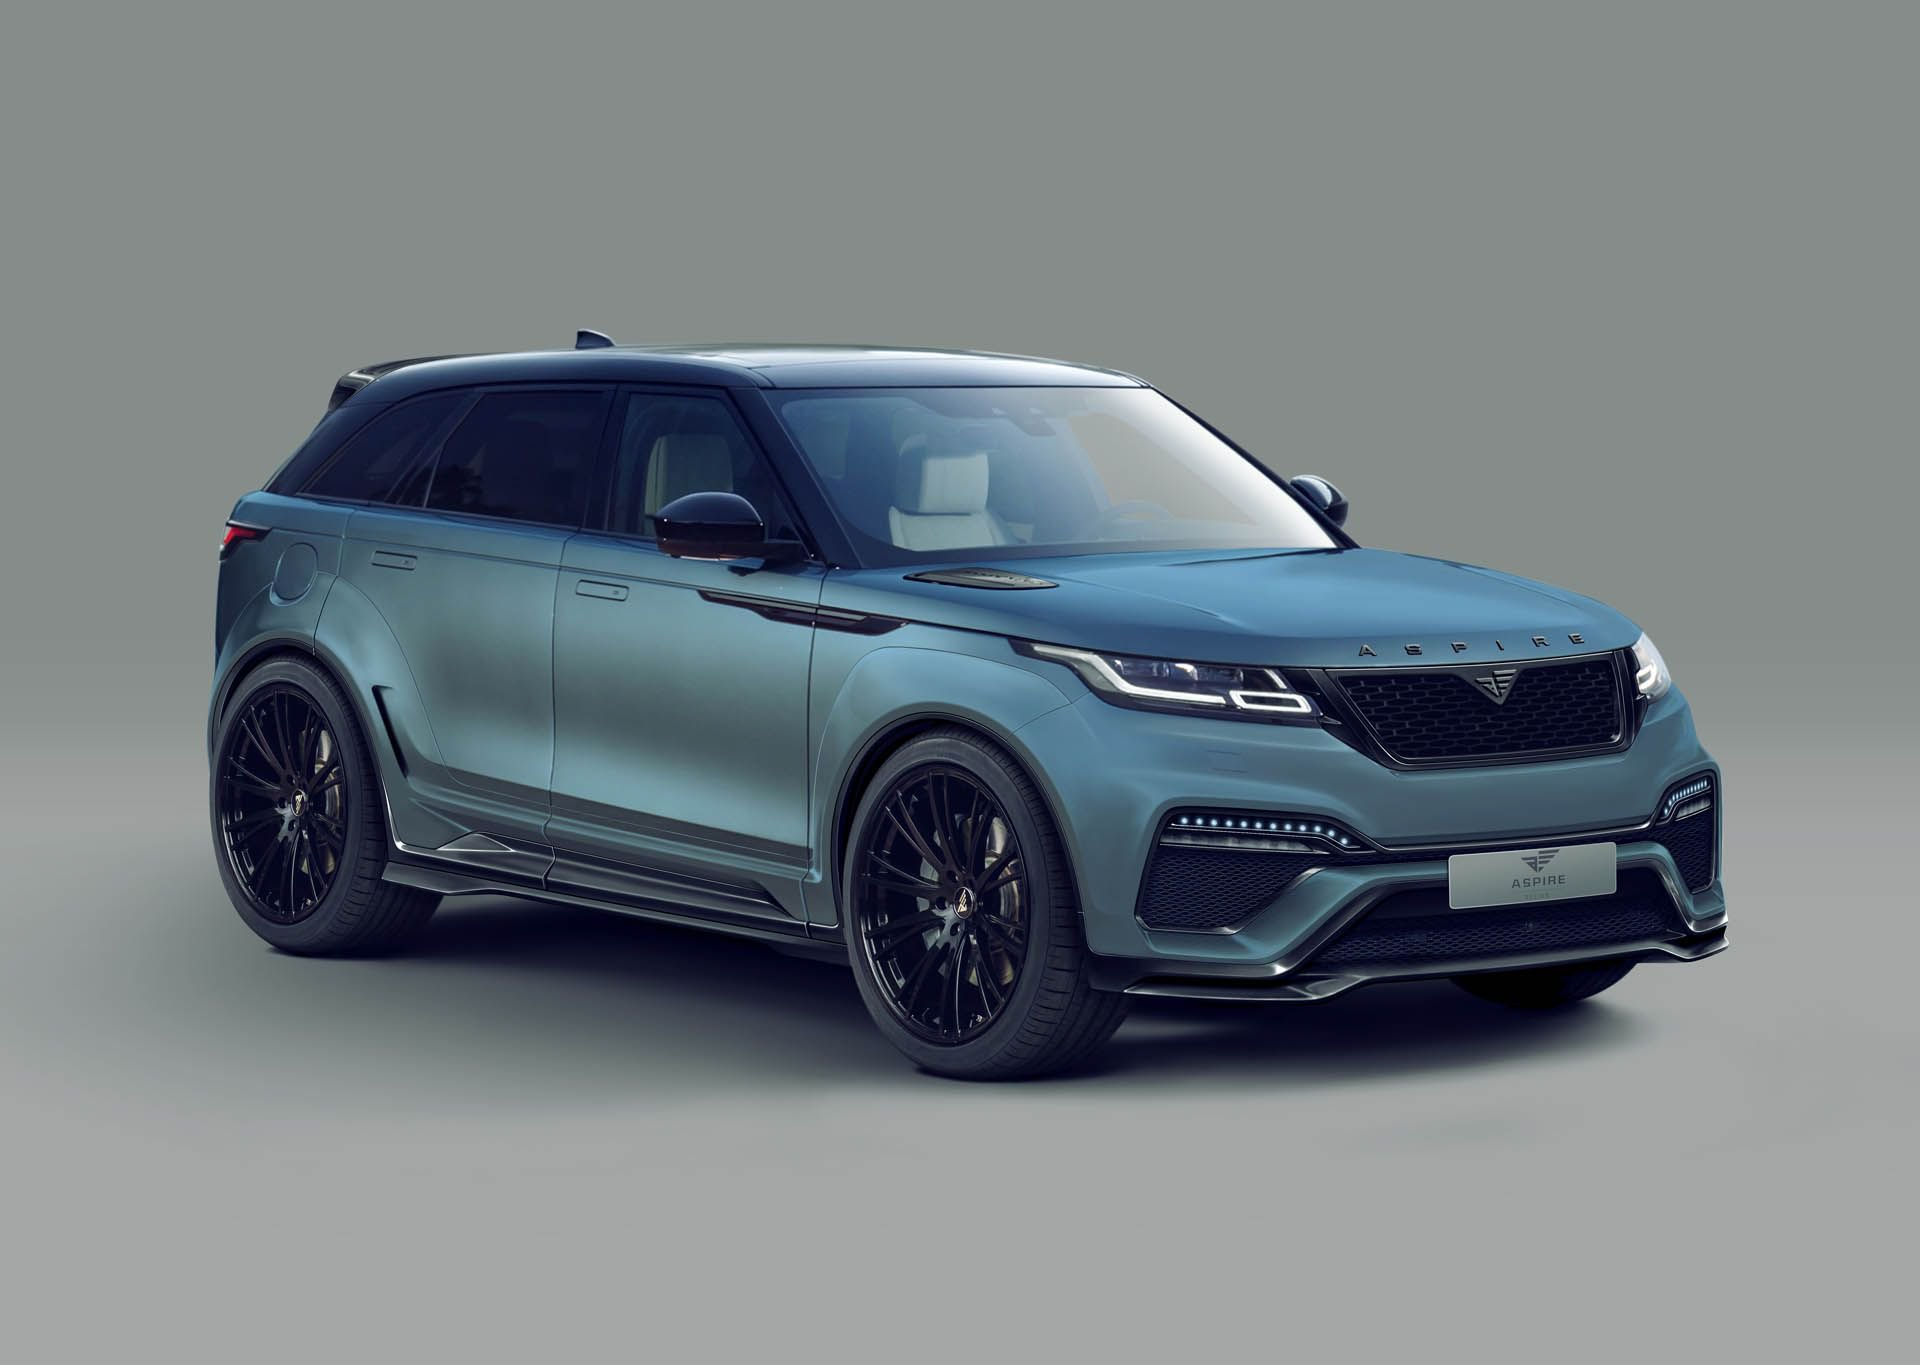 Range Rover Velar by Aspire Design (16)